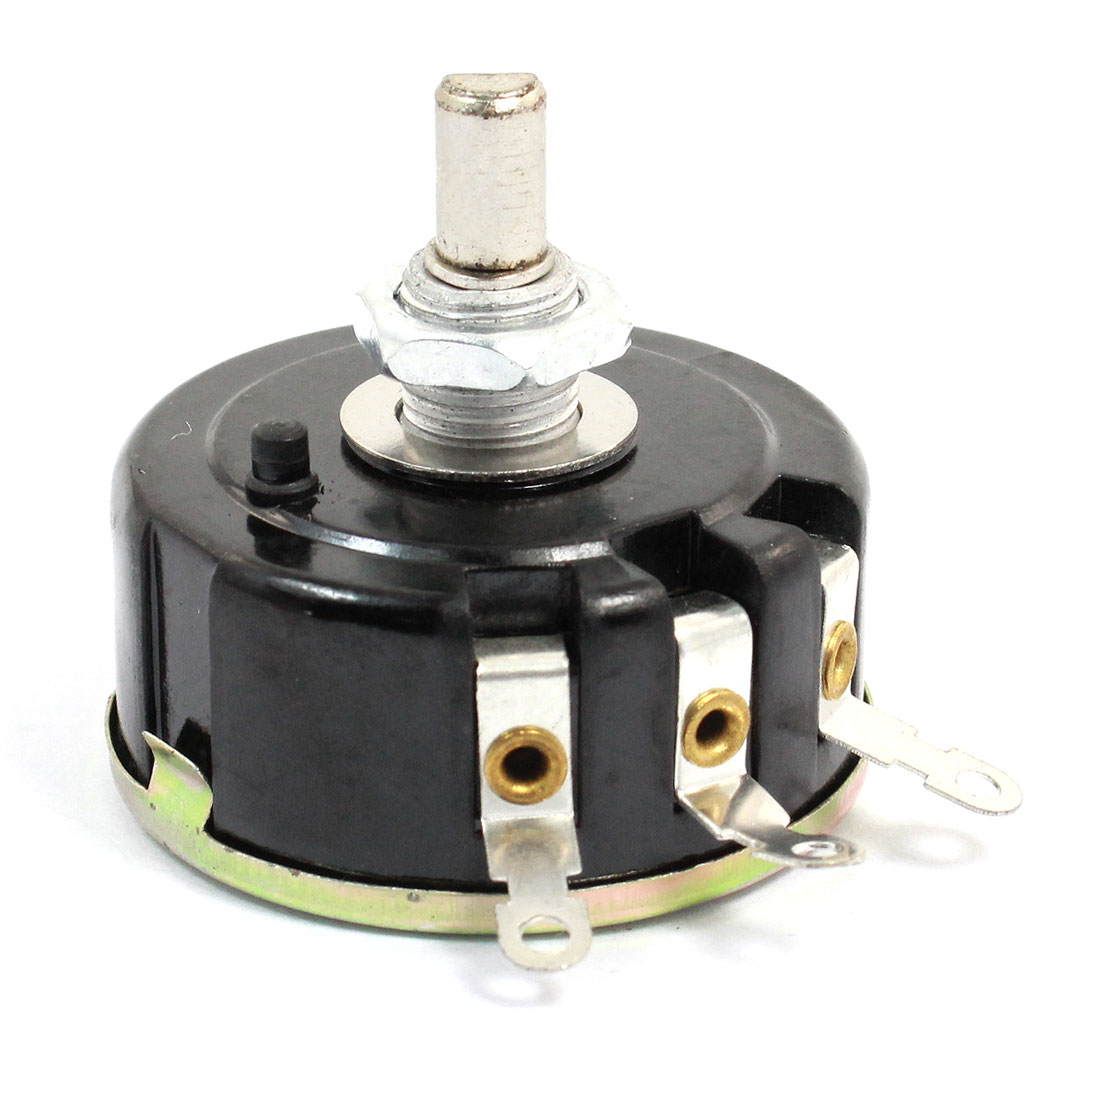 2.2K Ohm 3W Watt Single Turn 3 Terminals Rotary Wire Wound Potentiometer